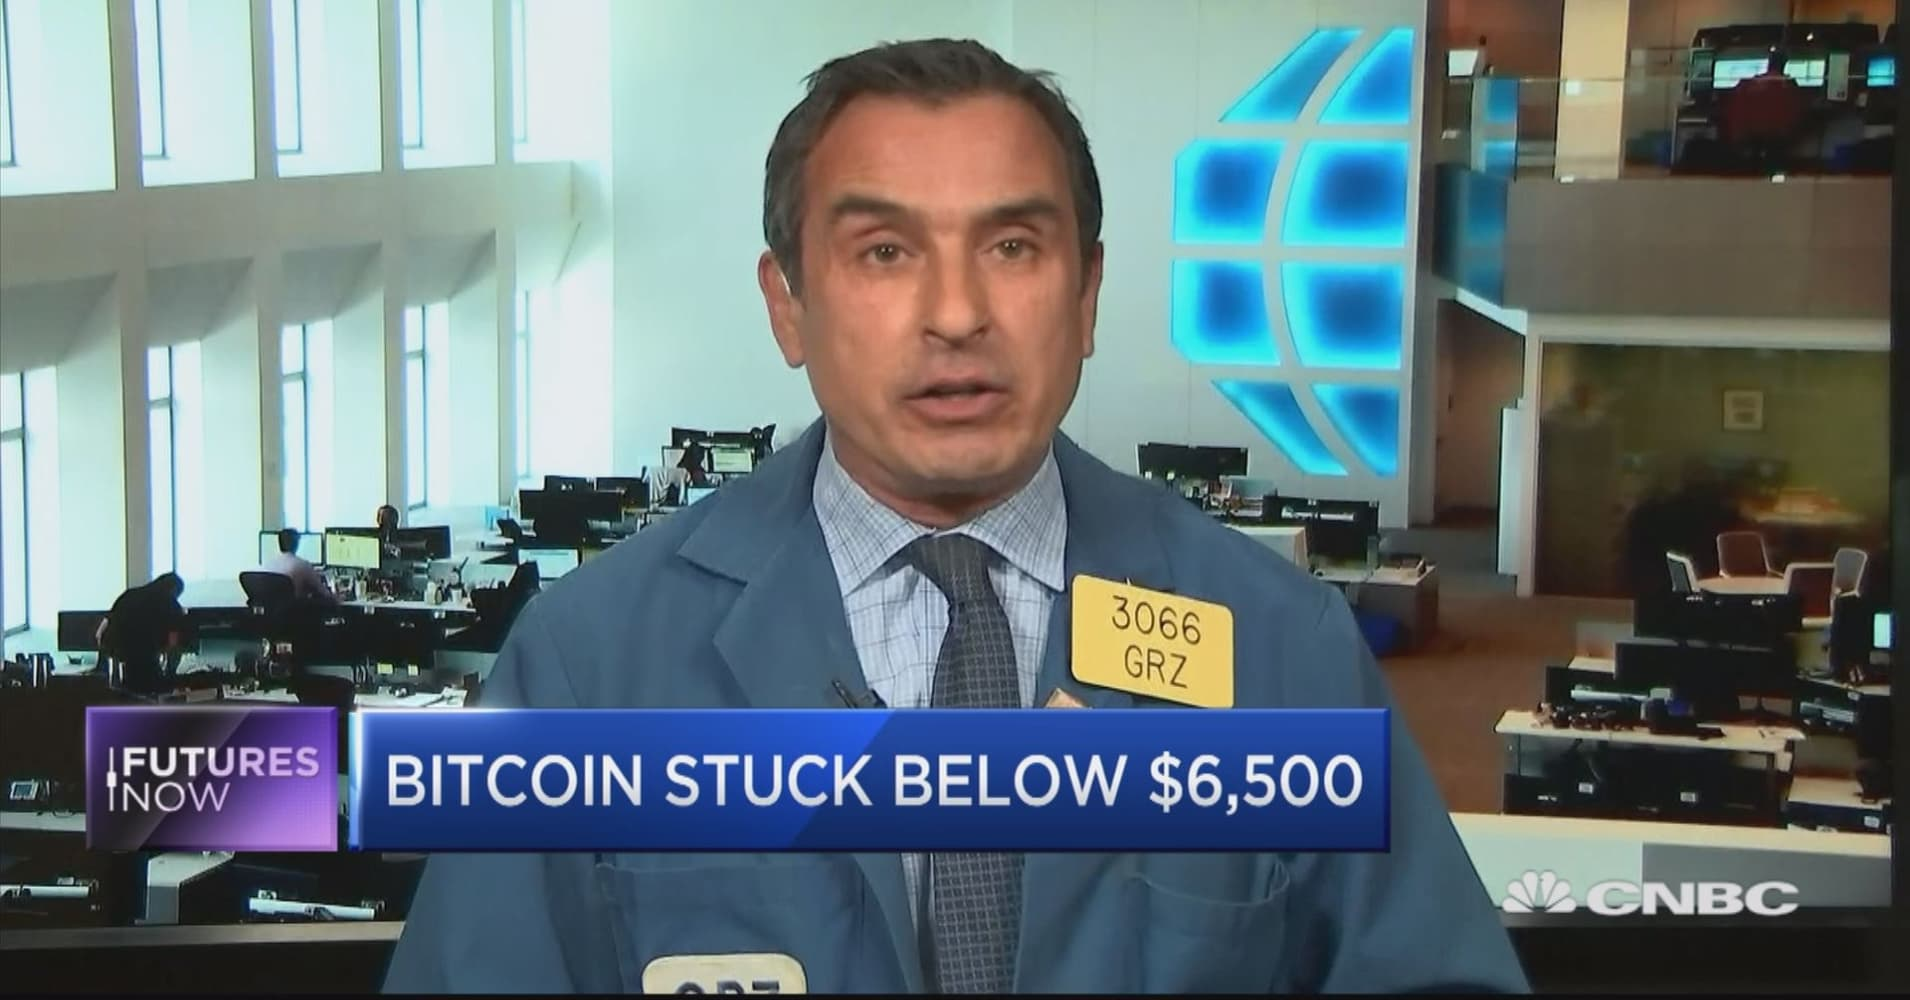 There's nothing but pain ahead for bitcoin, trader says